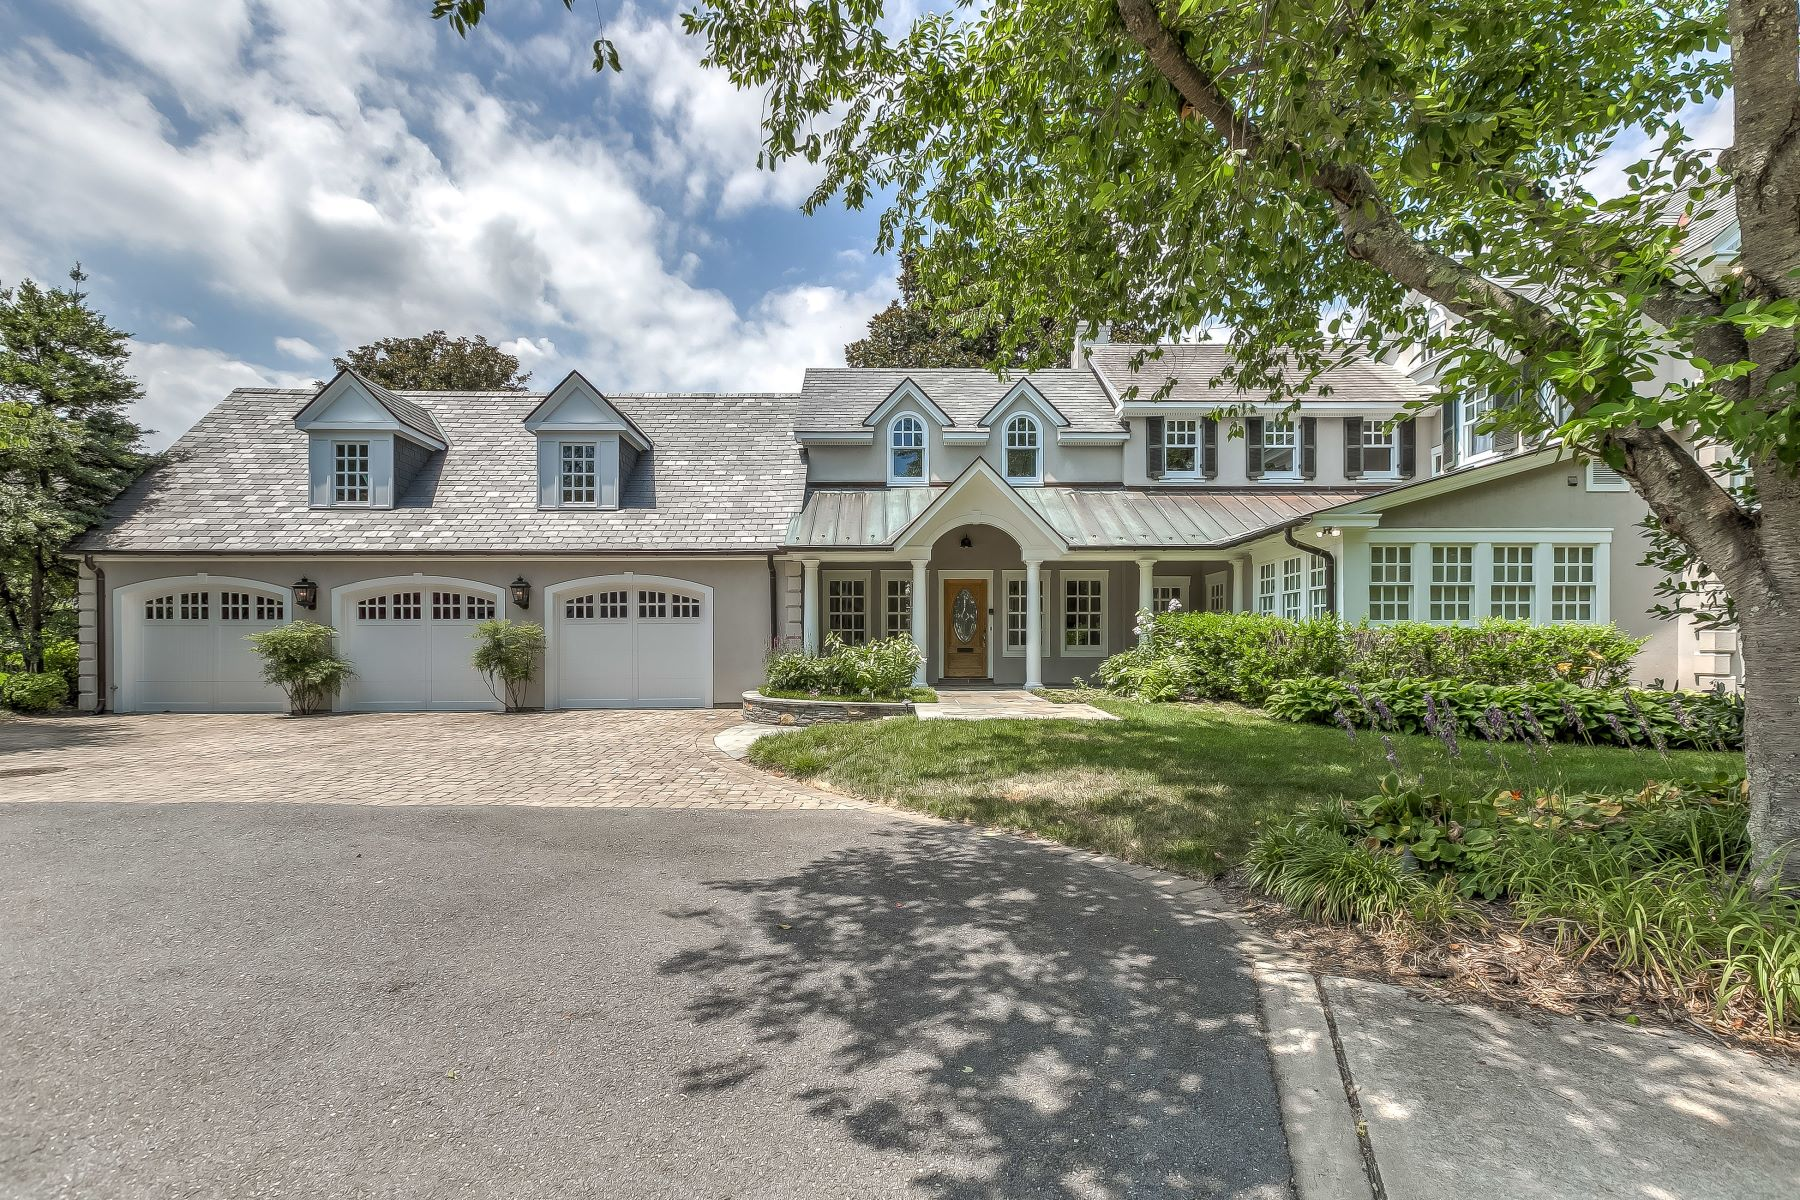 Single Family Home for Sale at Wardour On The Severn 226 Wardour Drive Annapolis, Maryland 21401 United States